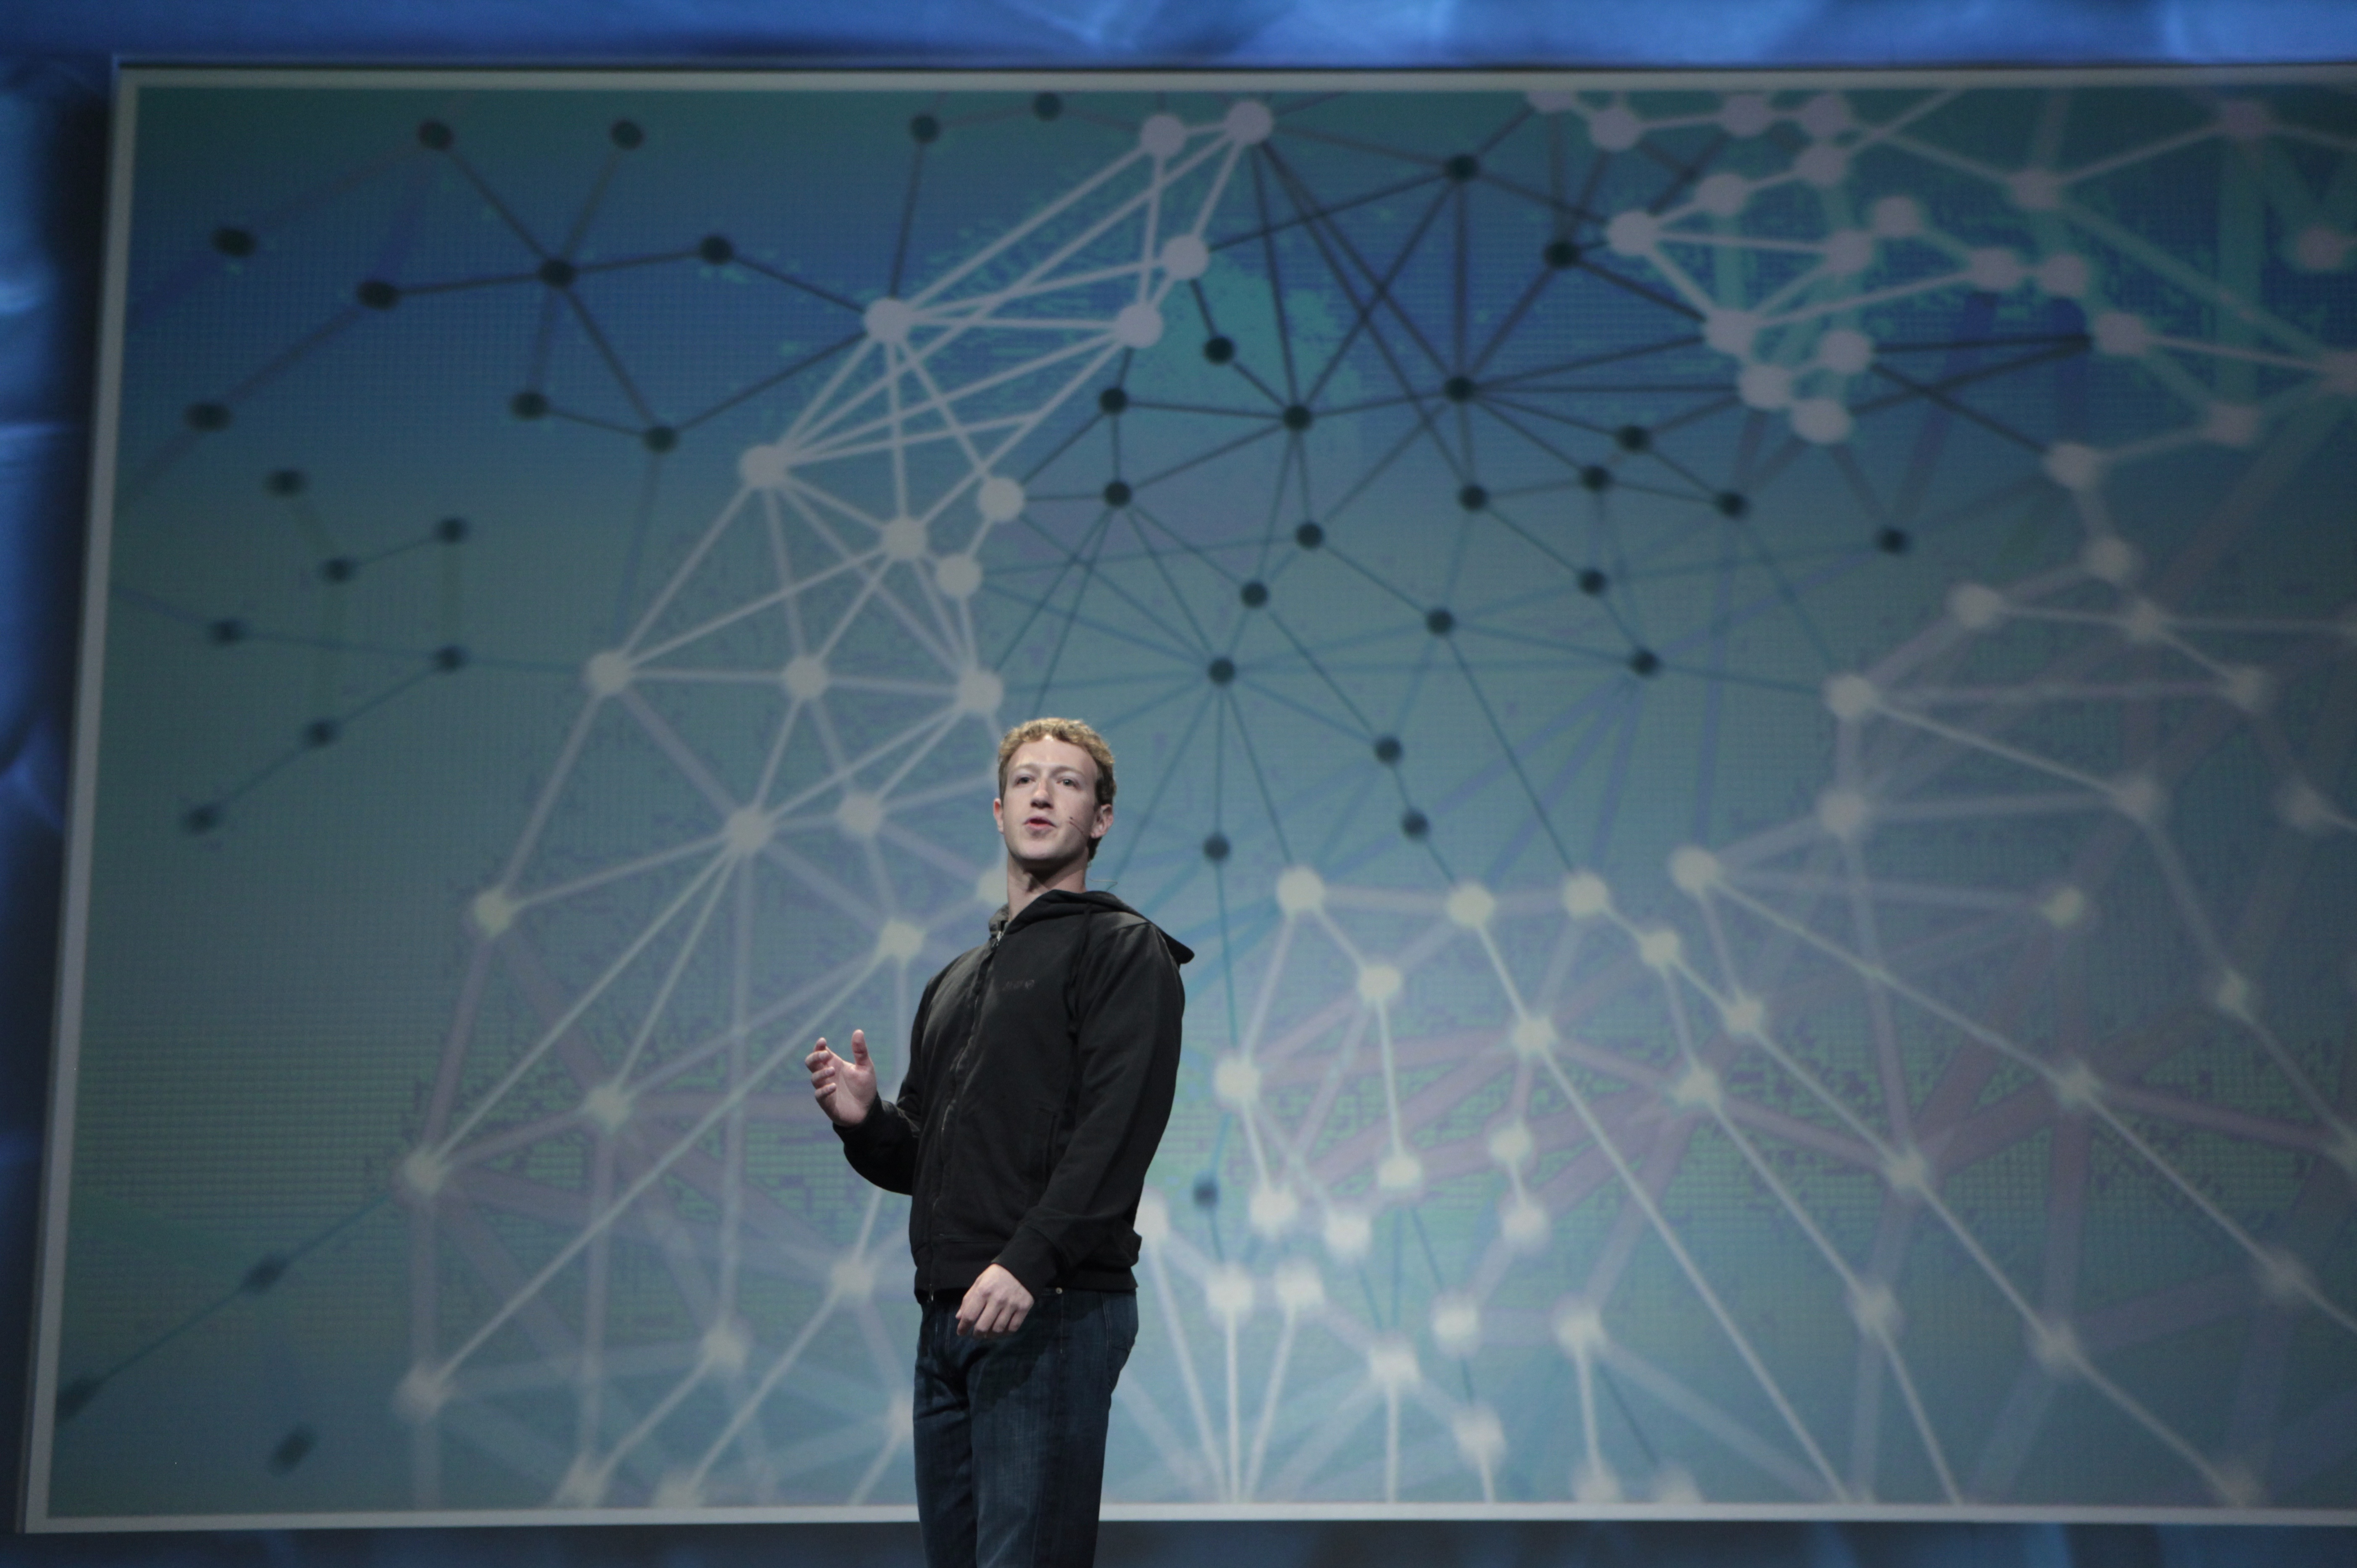 d556862ef7d9 Facebook CEO Mark Zuckerberg delivers a keynote address at a conference in  San Francisco. Zuckerberg